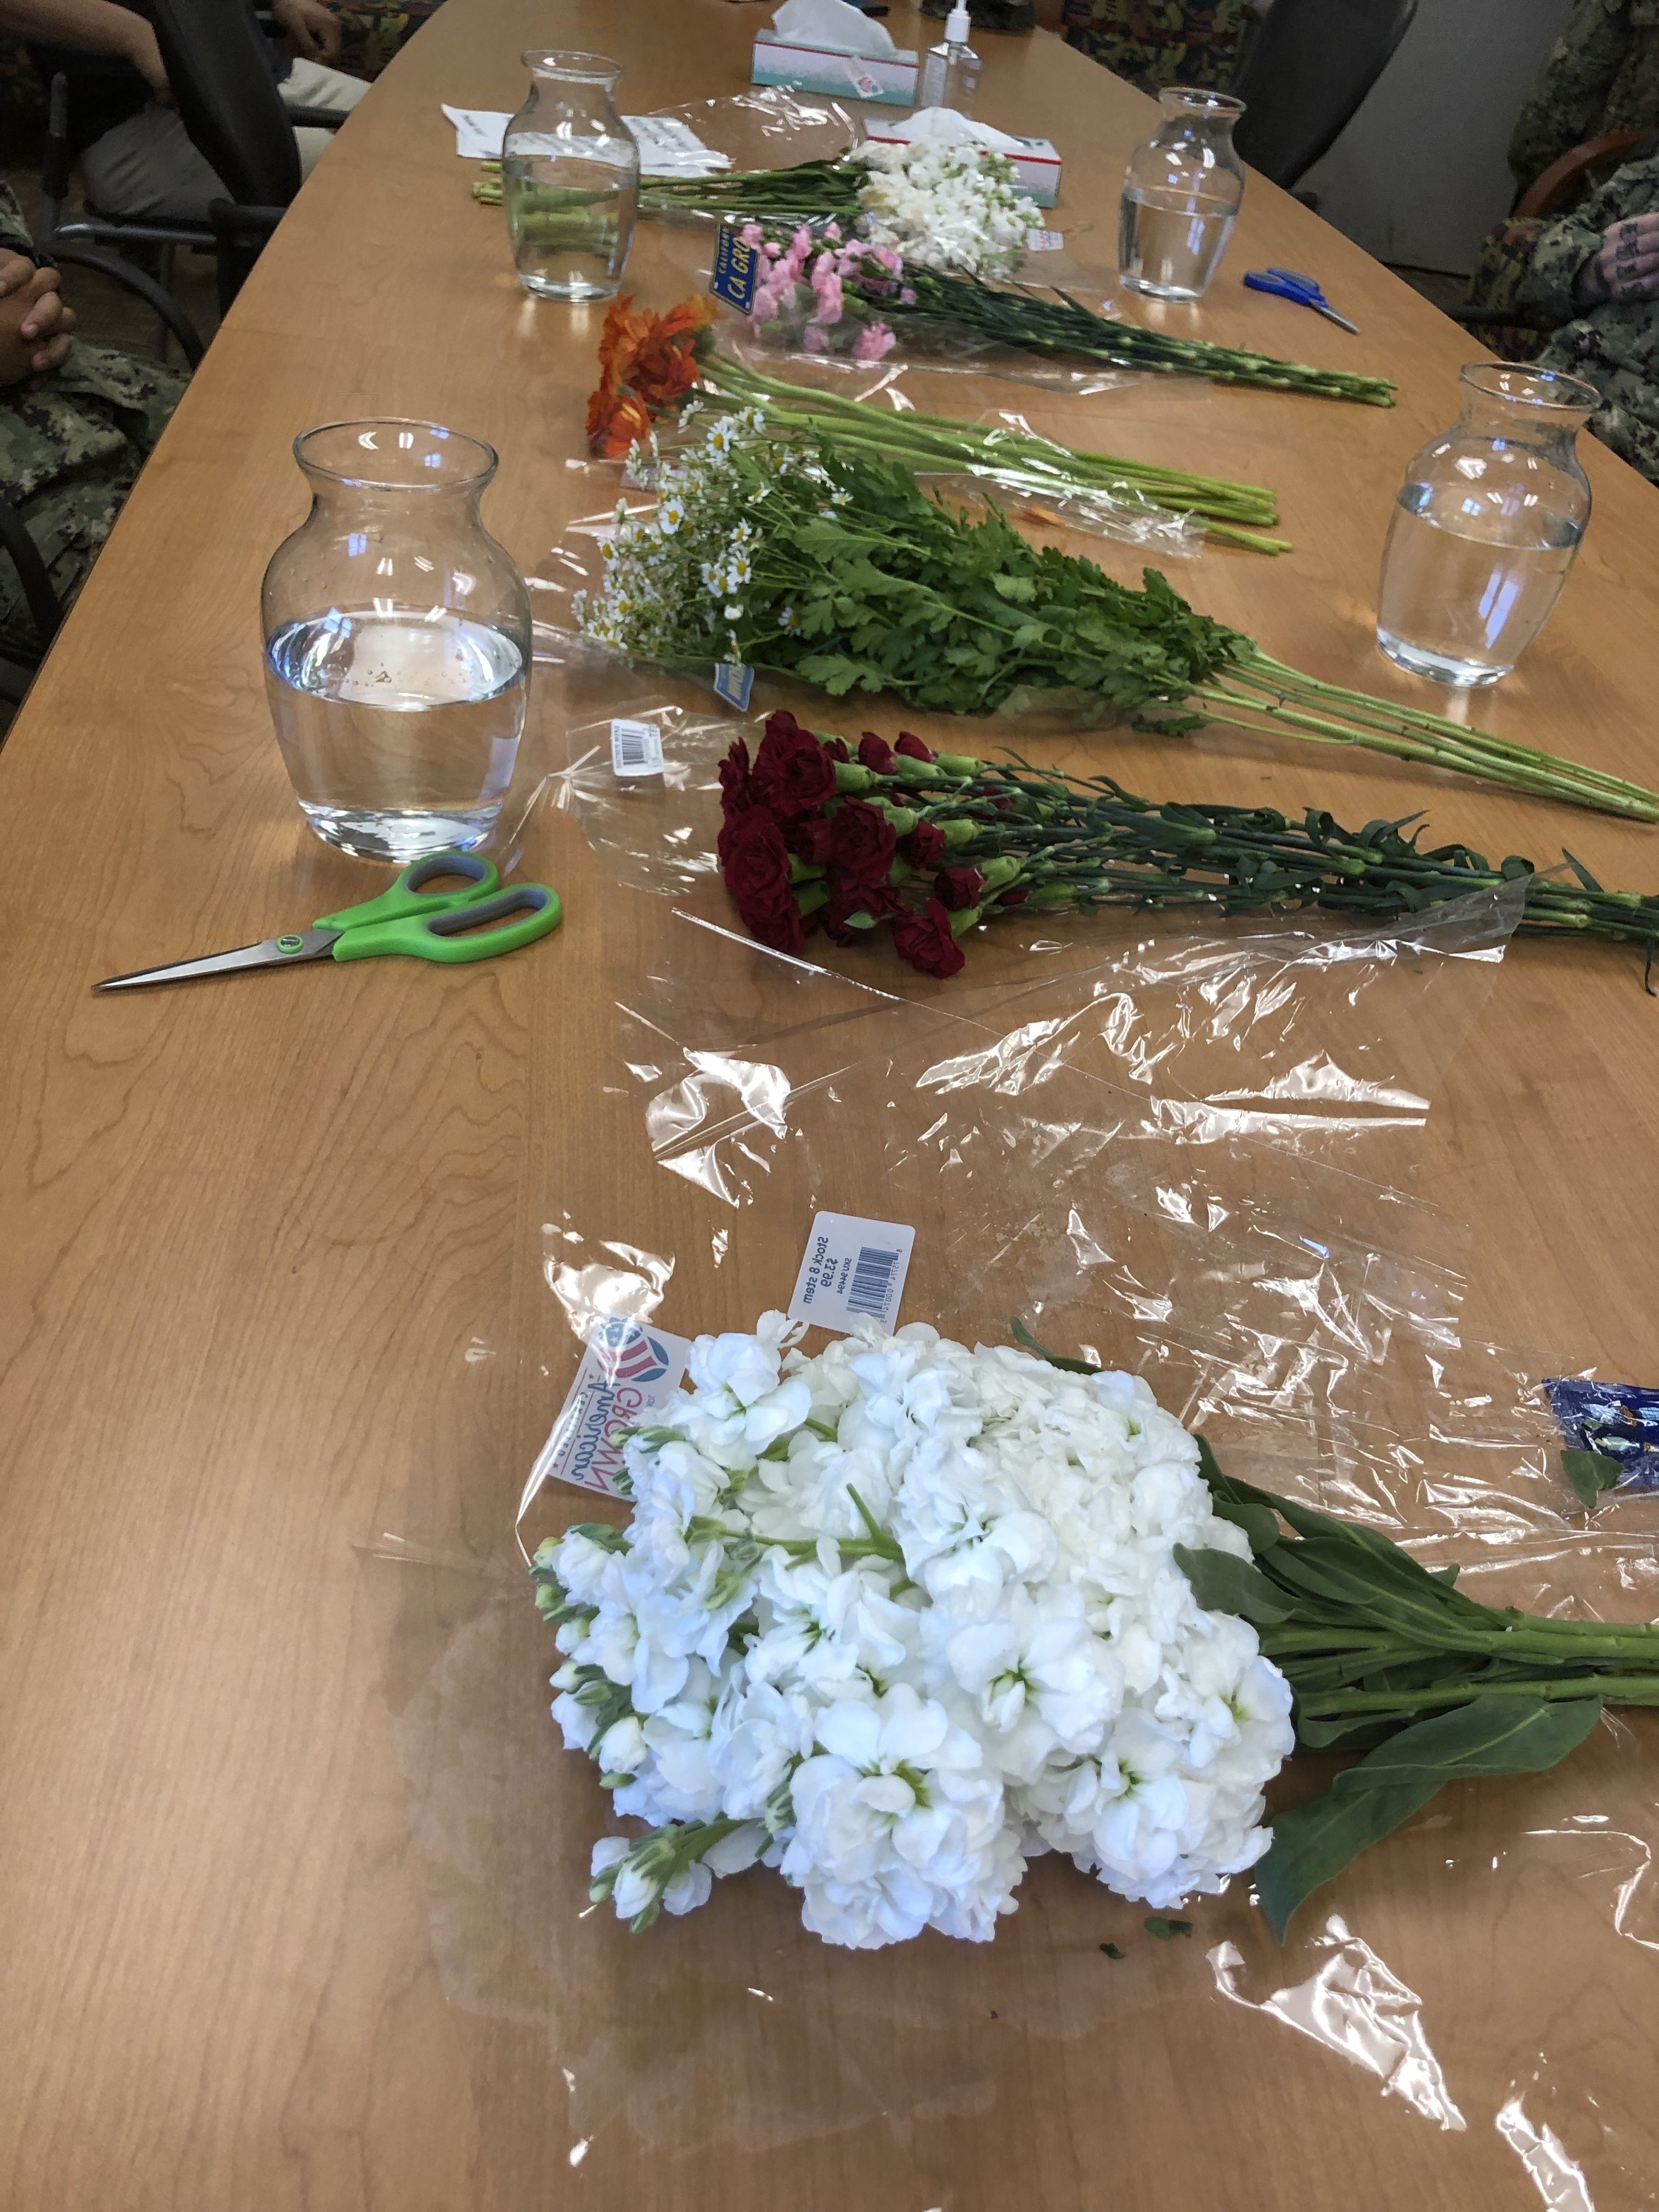 A Simple Mindfulness Activity For Groups Is Flower